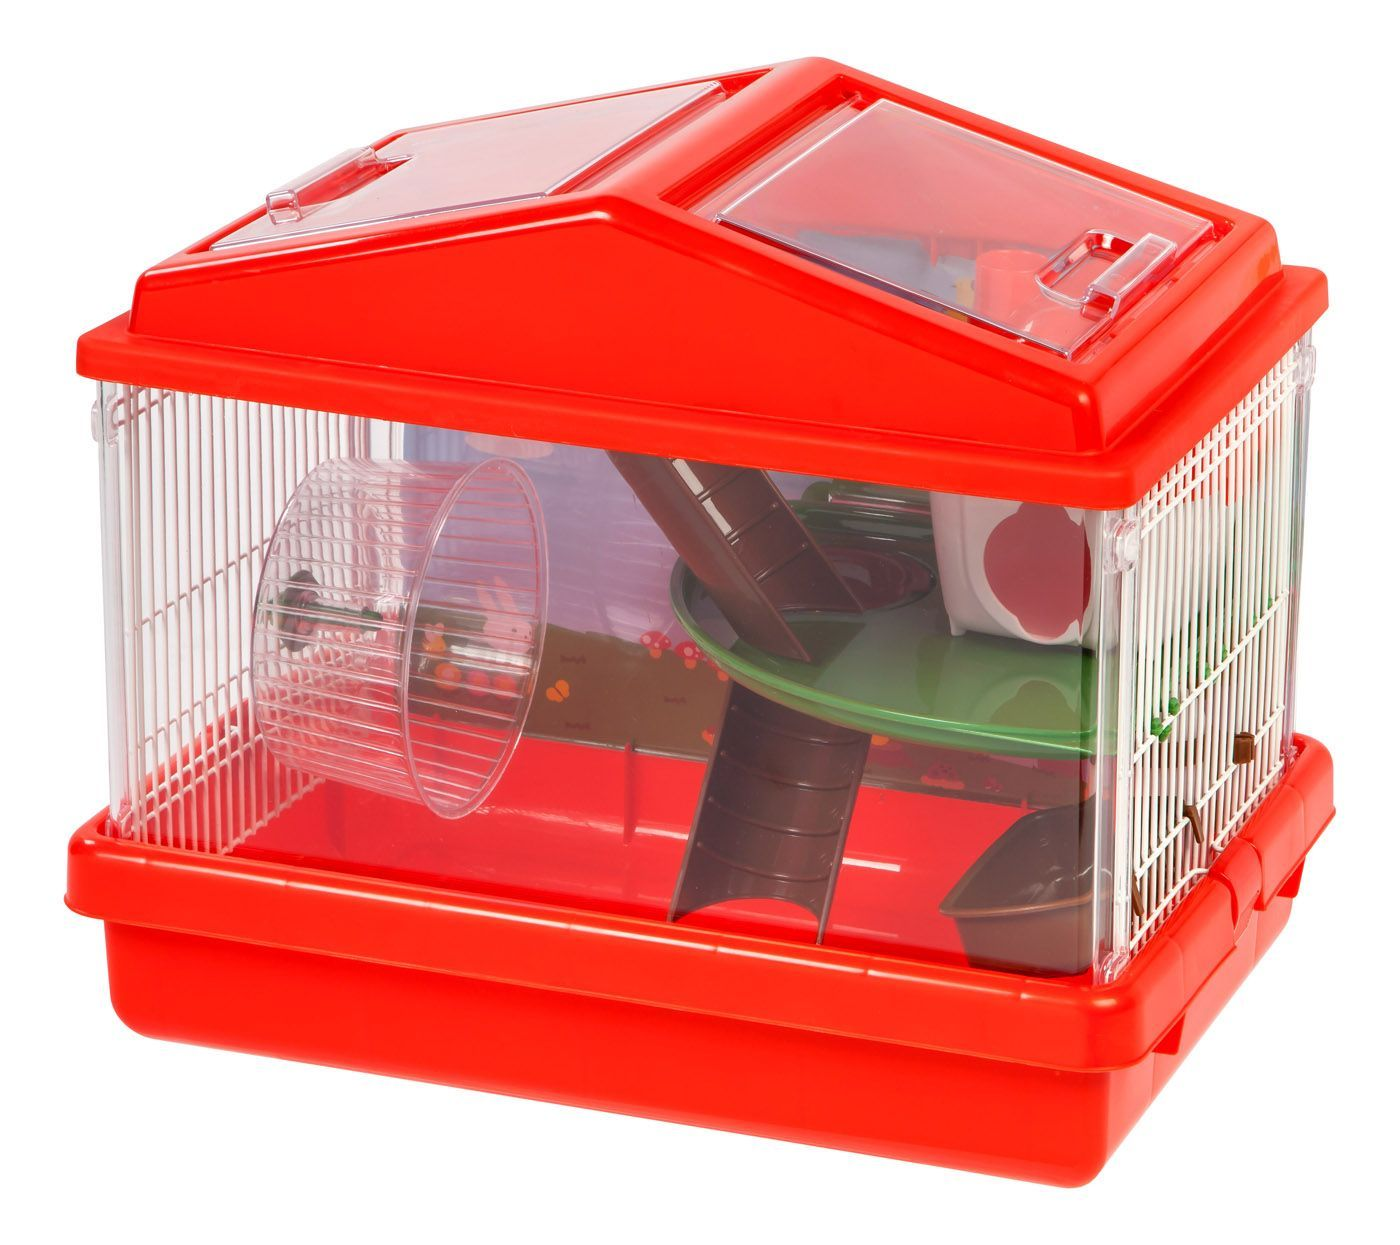 2 Level Hamster Cage Medium Red Cool Hamster Cages Hamster